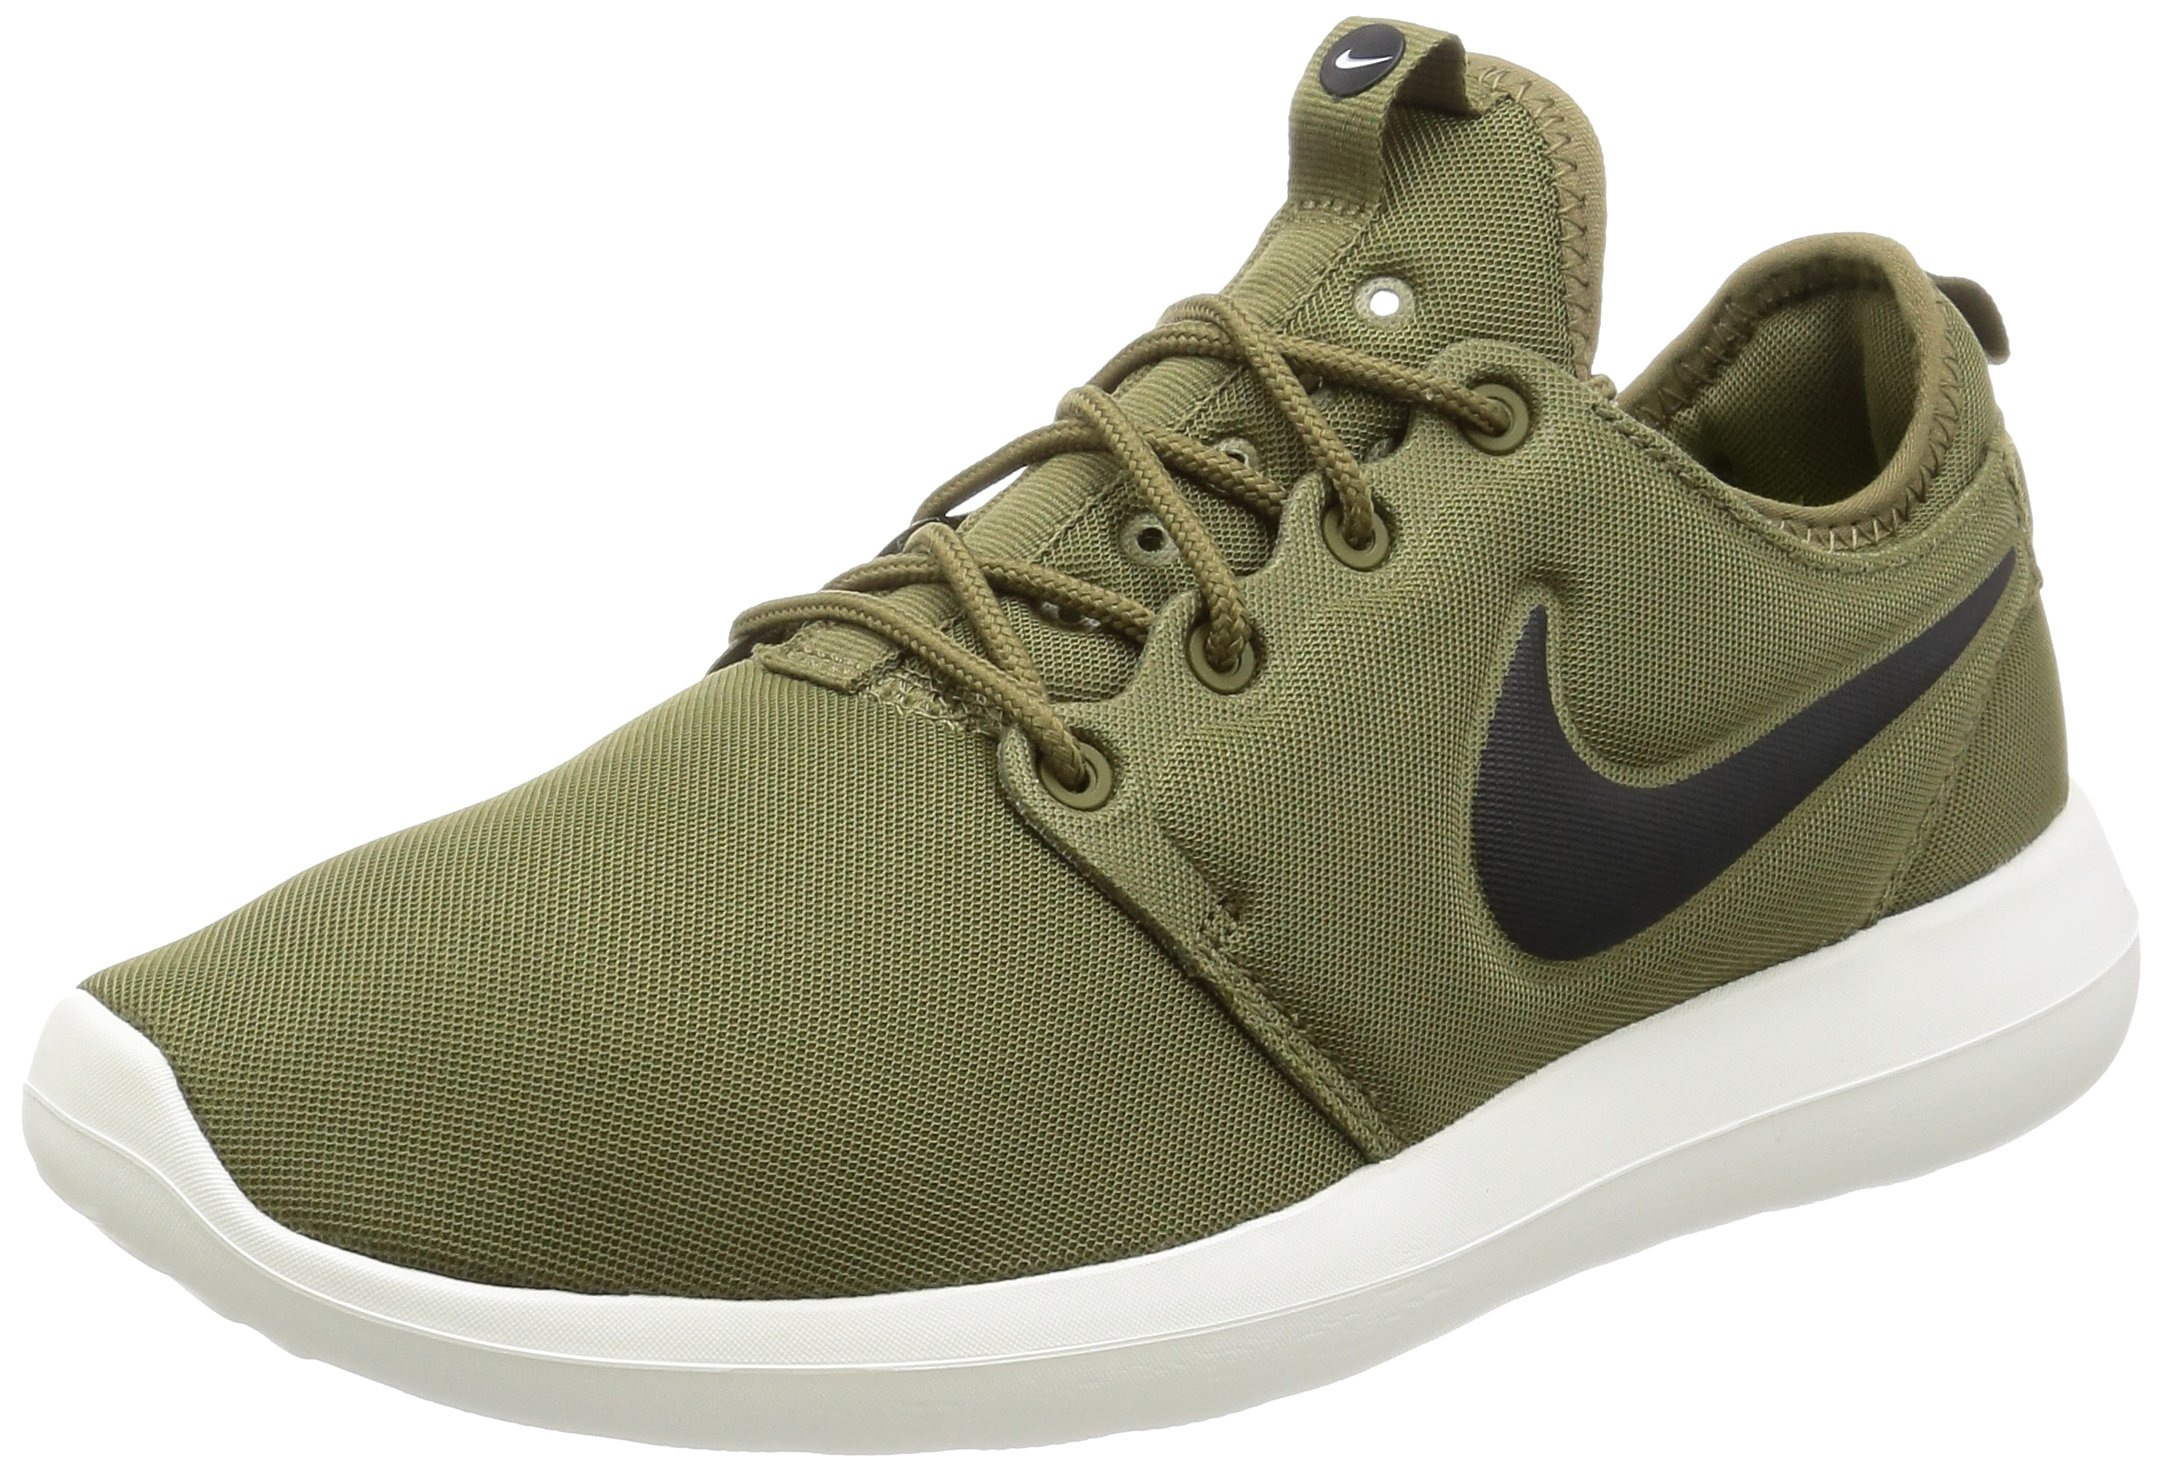 8f89488a4681 Galleon - Nike Mens Roshe Two Running Shoes Iguana Black-SAIL-Volt 844656-200  Size 8